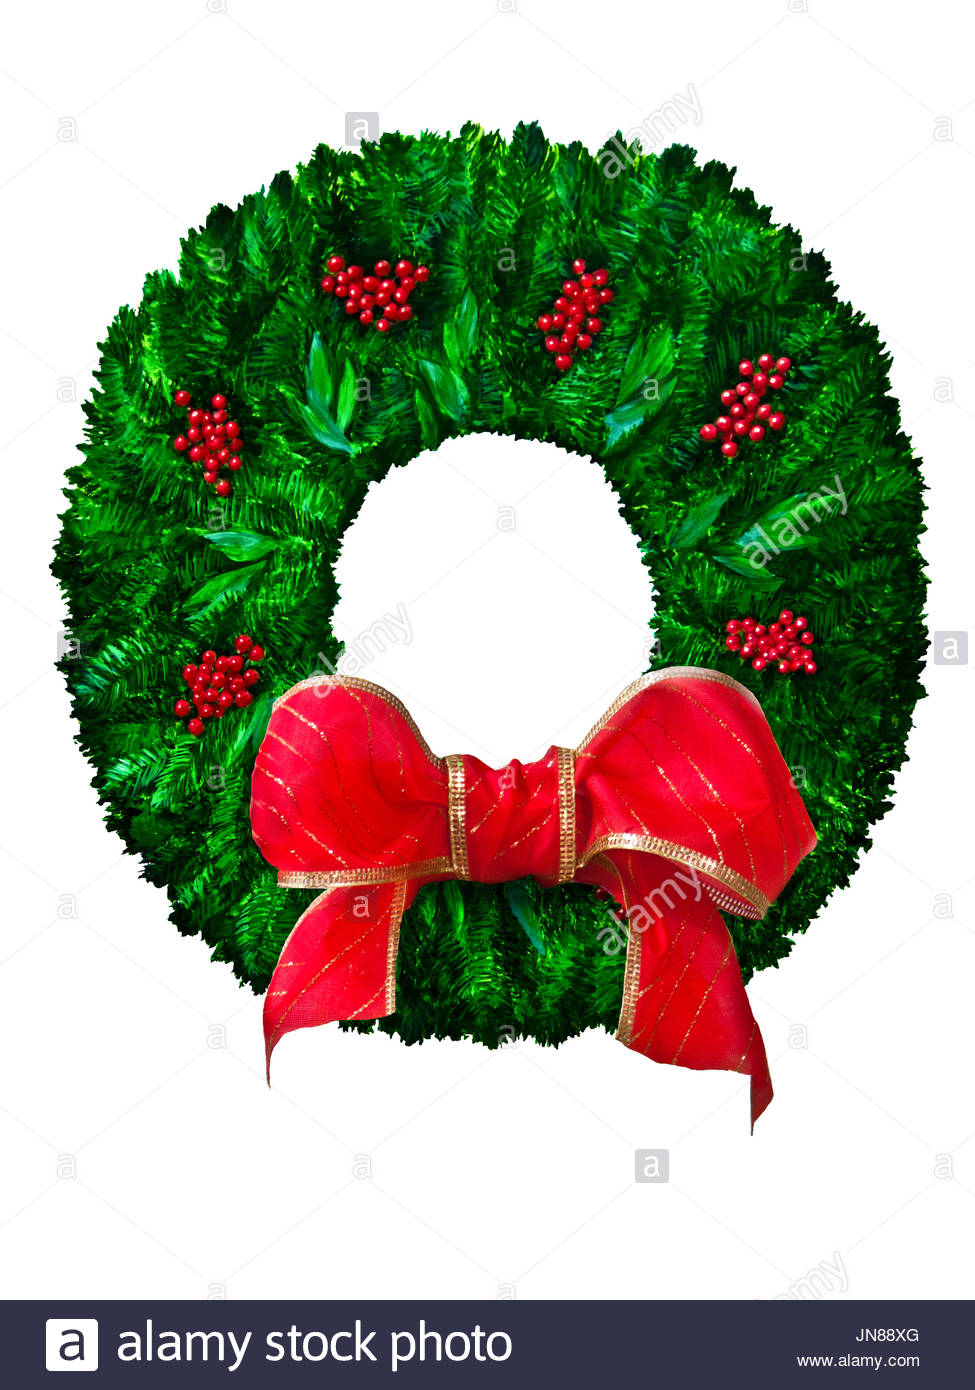 975x1390 Evergreen Wreath Stock Photos Amp Evergreen Wreath Stock Images